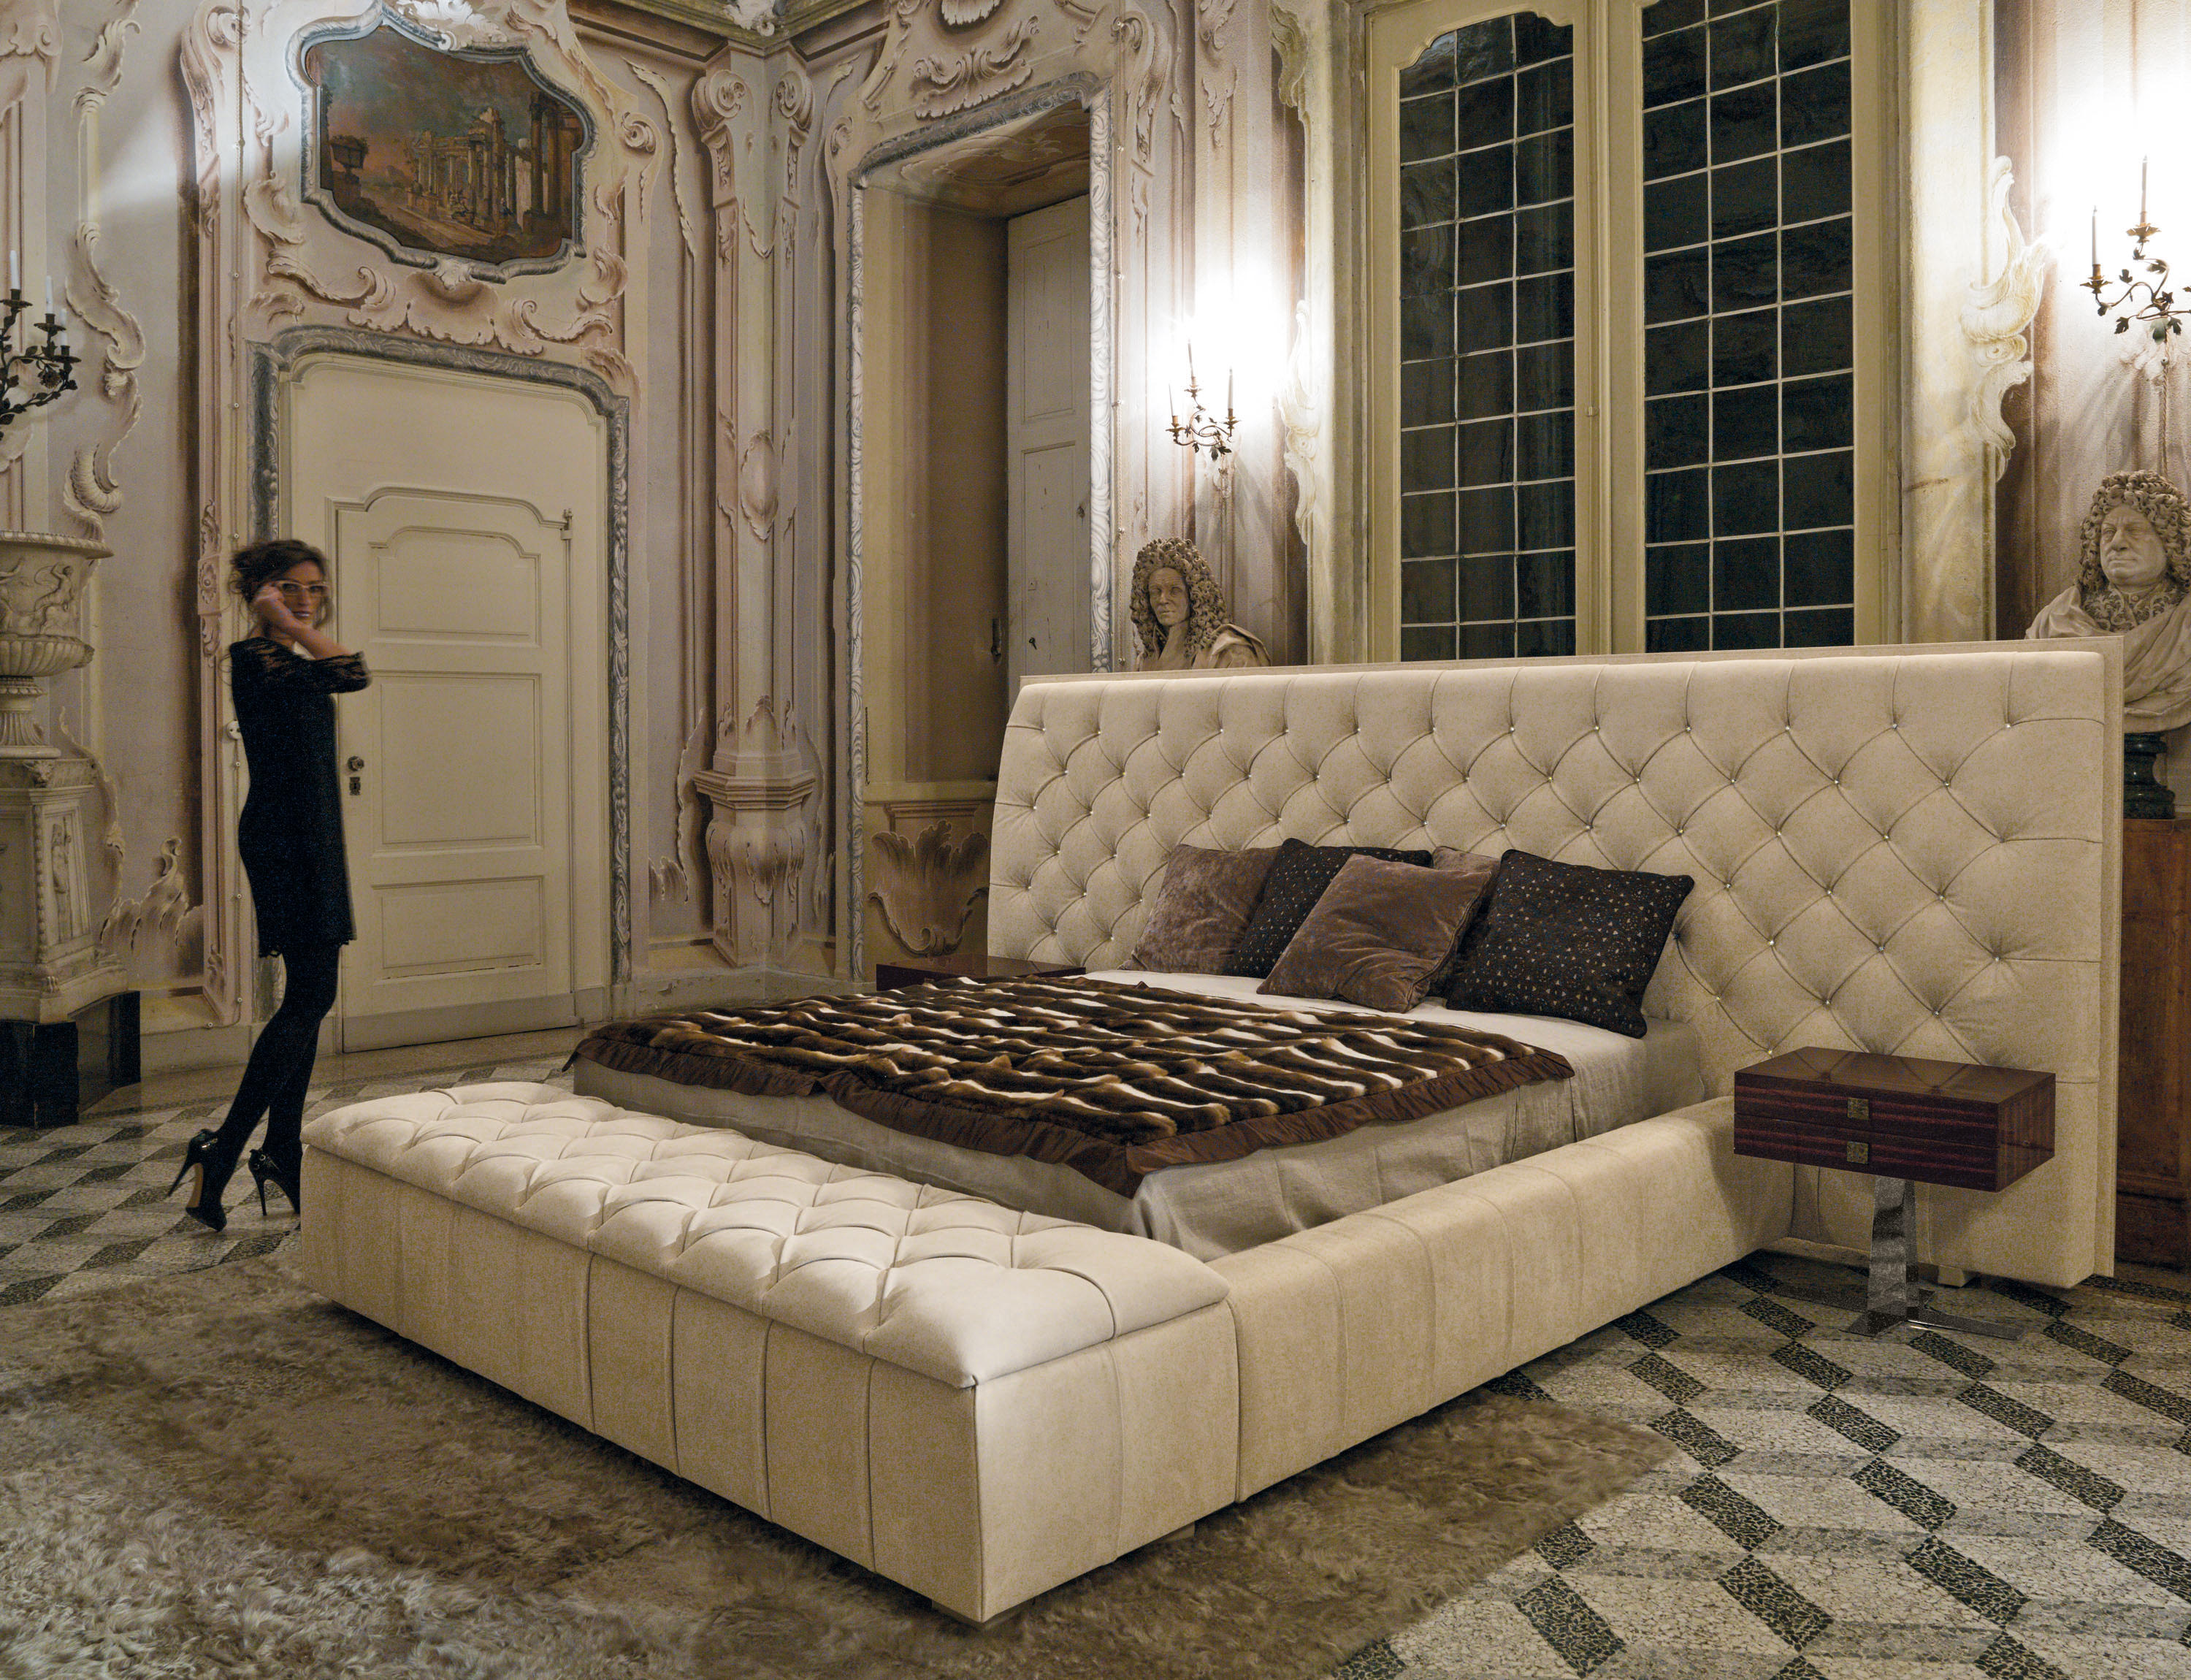 Napoleon By Longhi S.p.a. | Beds ...